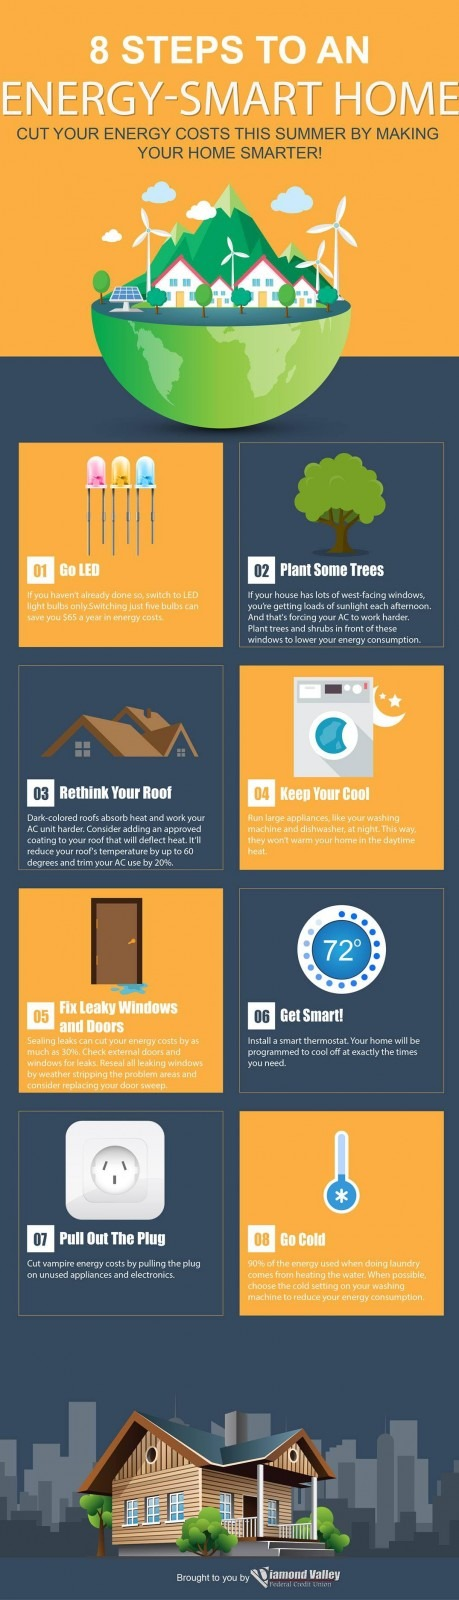 8 Steps To An Energy Smart Home